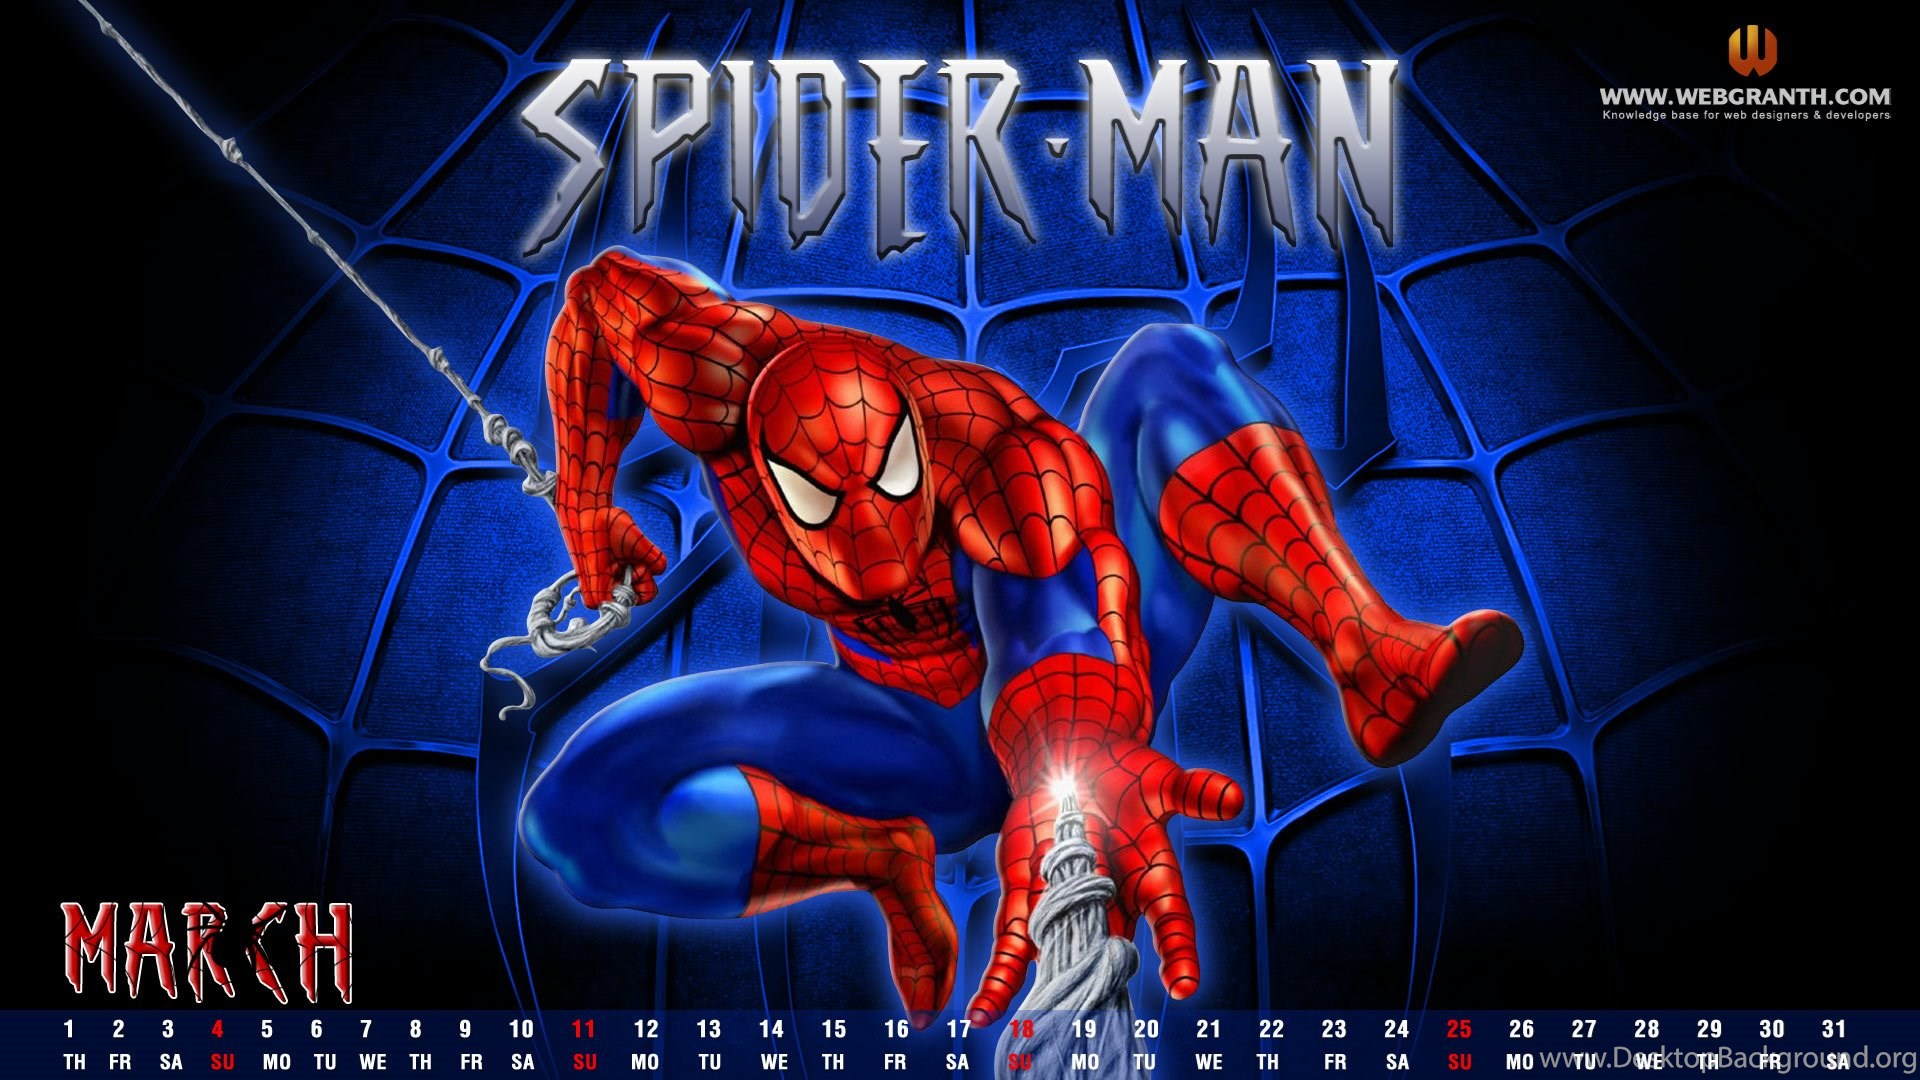 cartoon images of spiderman hd wallpapers lovely desktop background